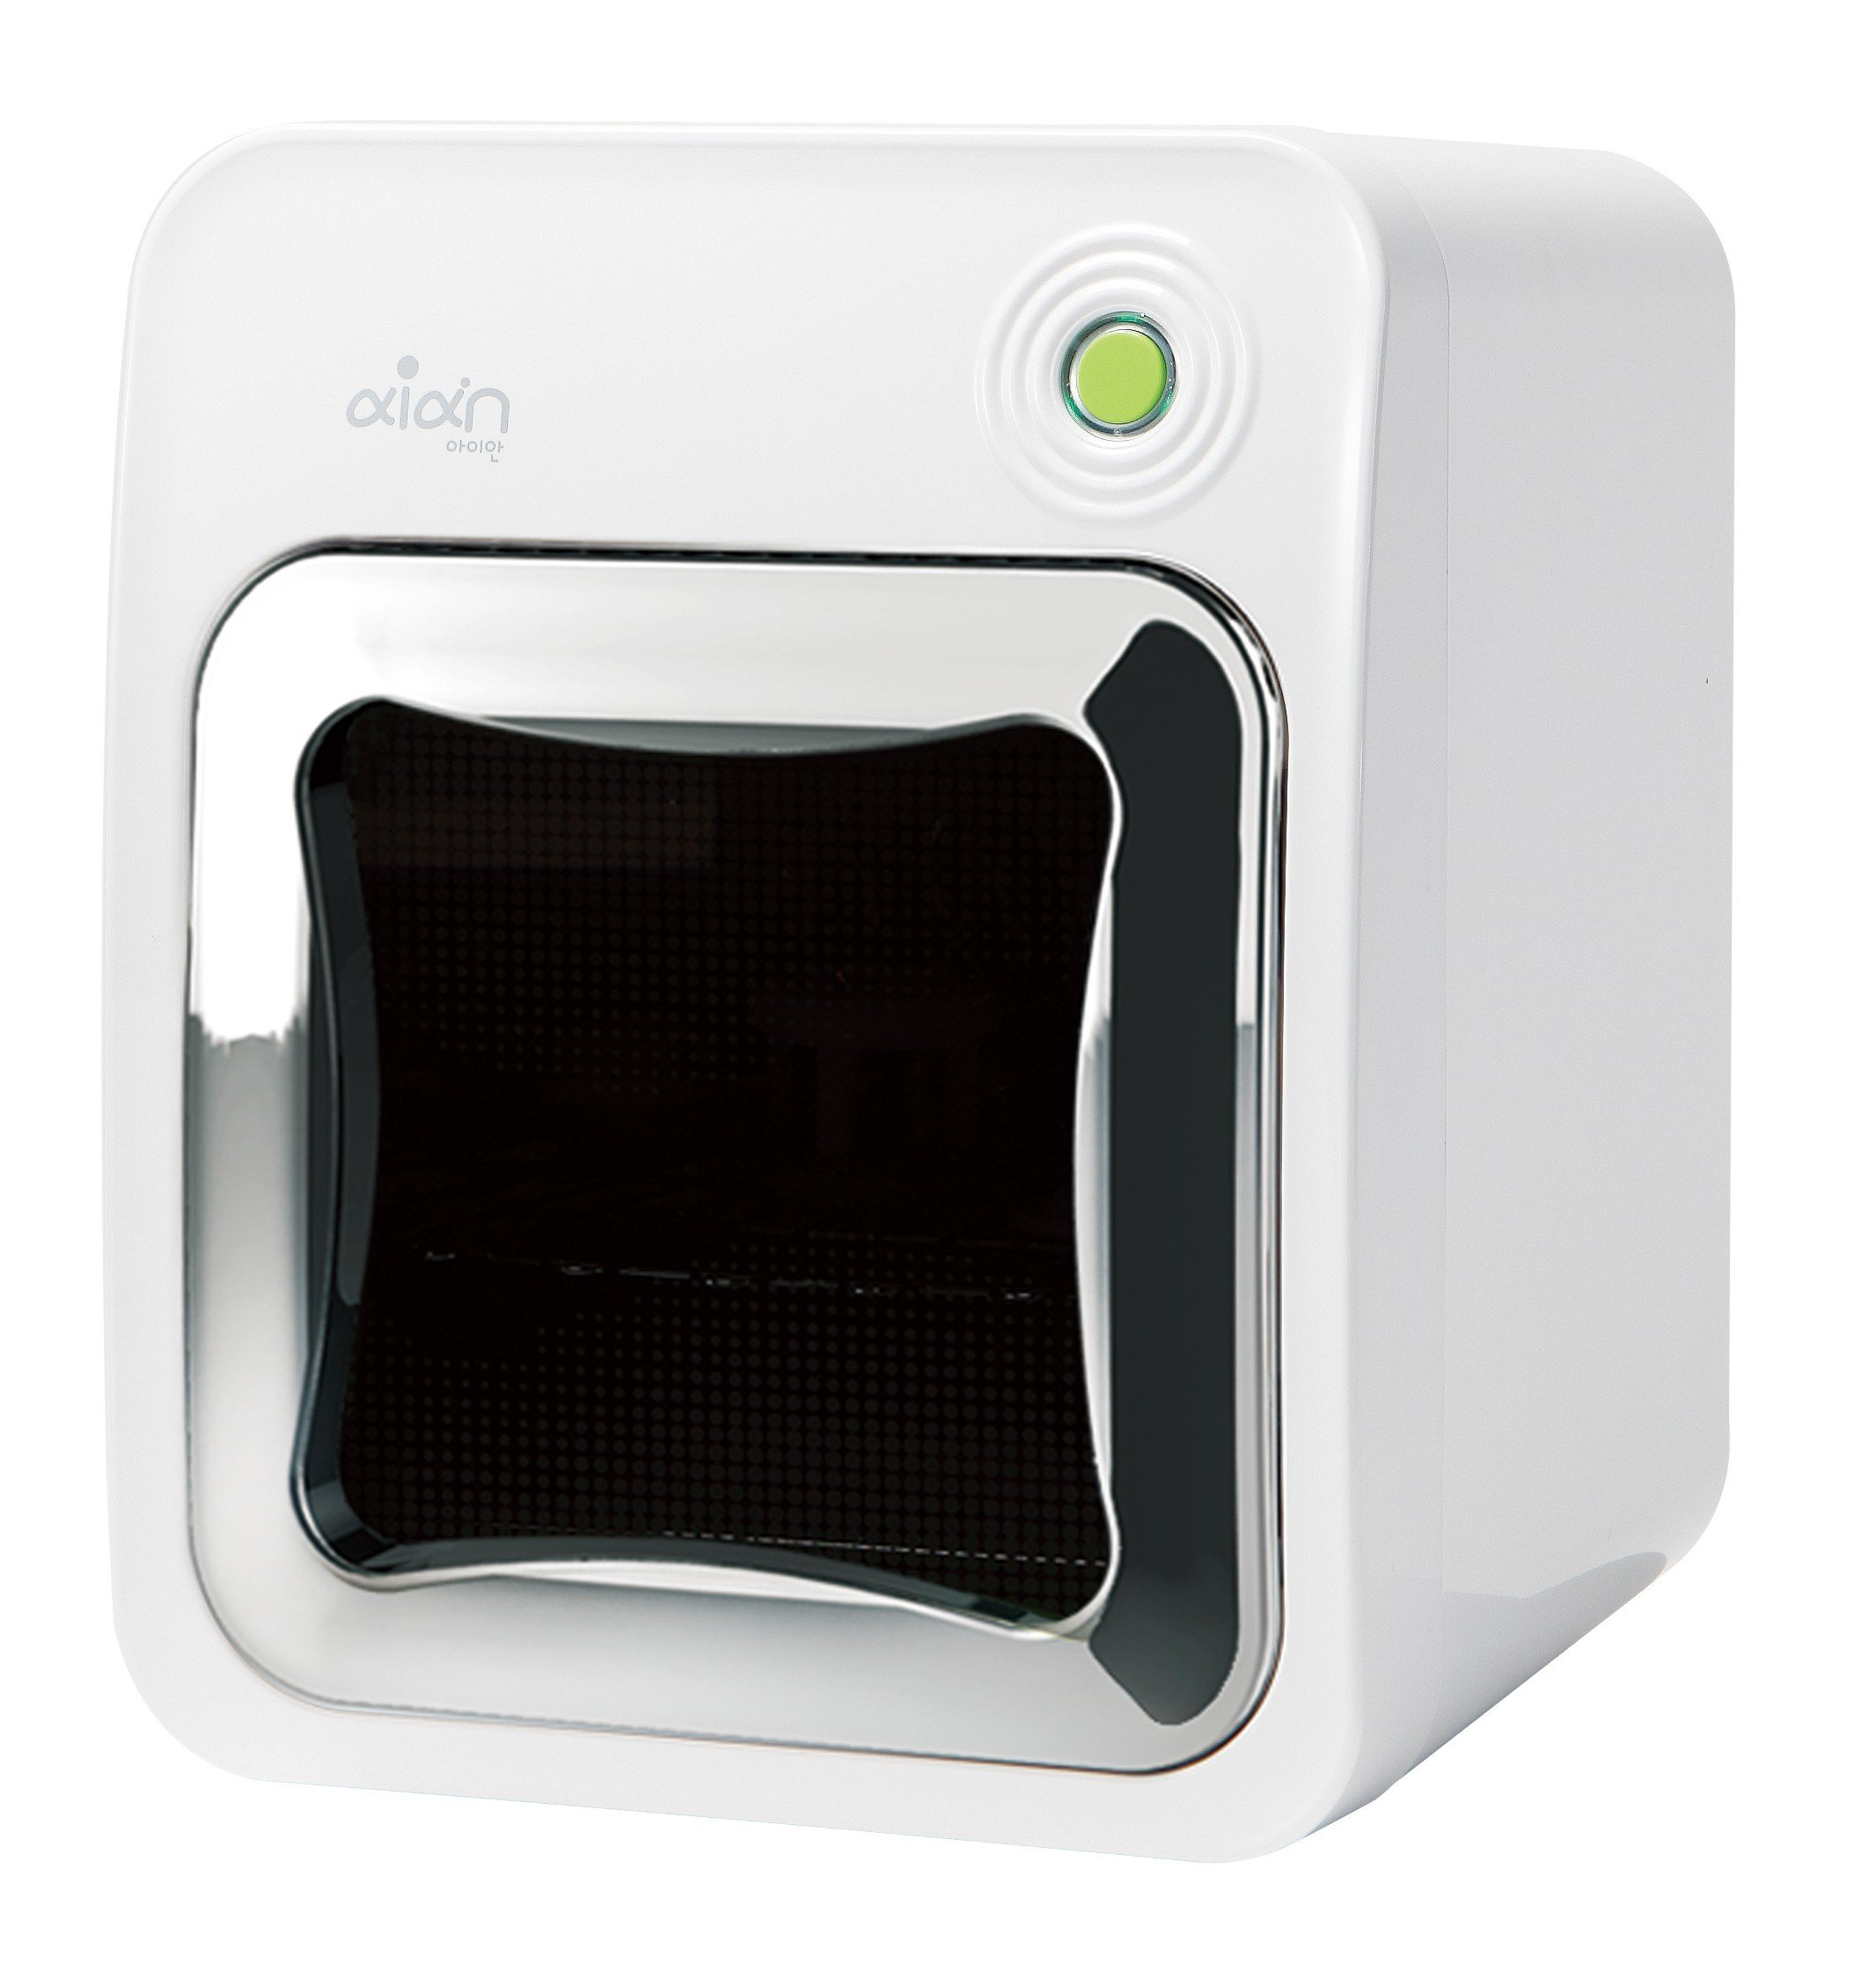 Aian Sterilizer & Dryer - Mom Loves Aian for Fast, Simple, and Easy Operation. (Chrome)